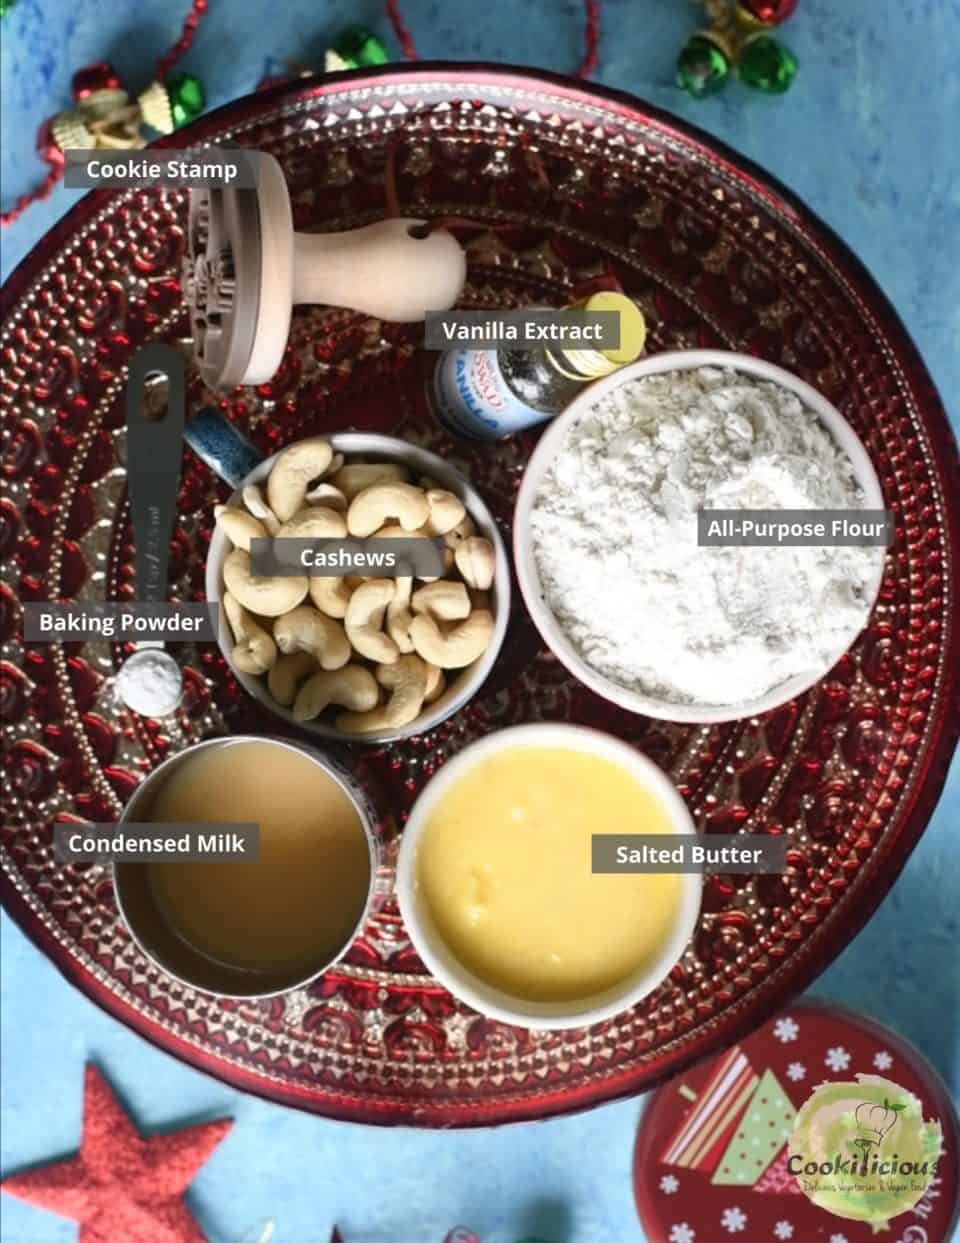 all the ingredients needed to make Nankhatai arranged on a tray with labels on them